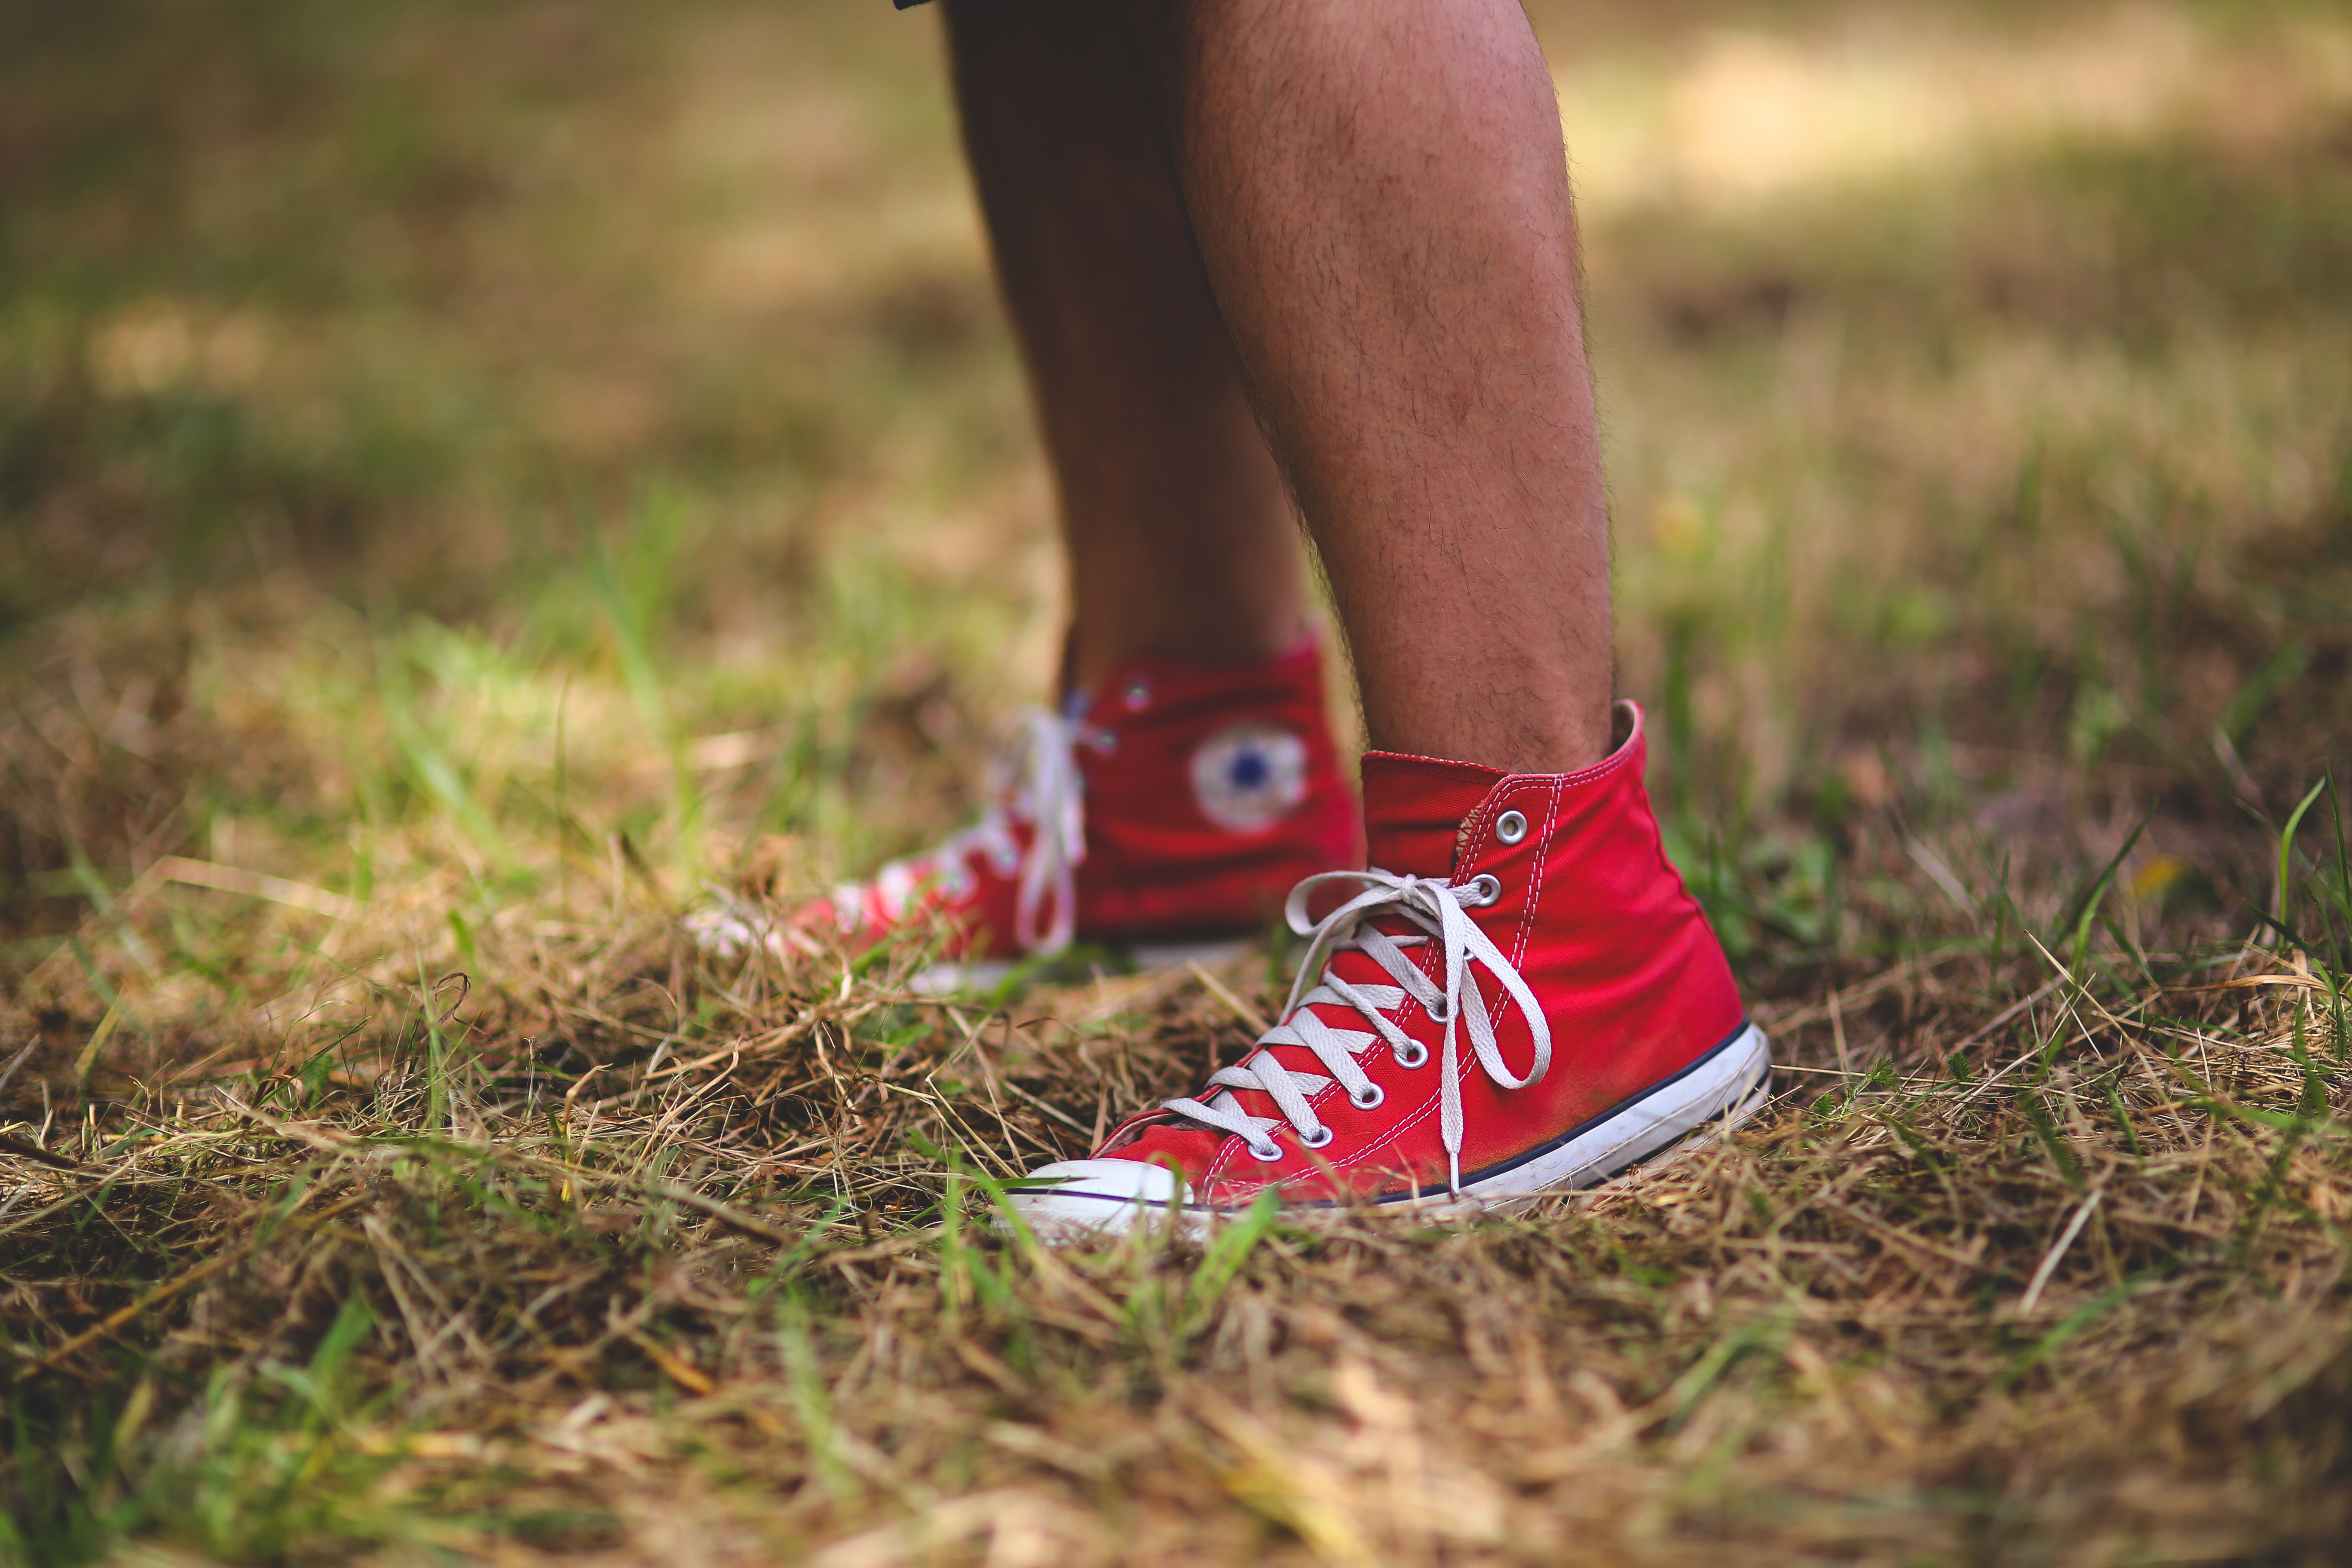 Size Chart Converse Shoes: Guy in sneakers · Free Stock Photo,Chart